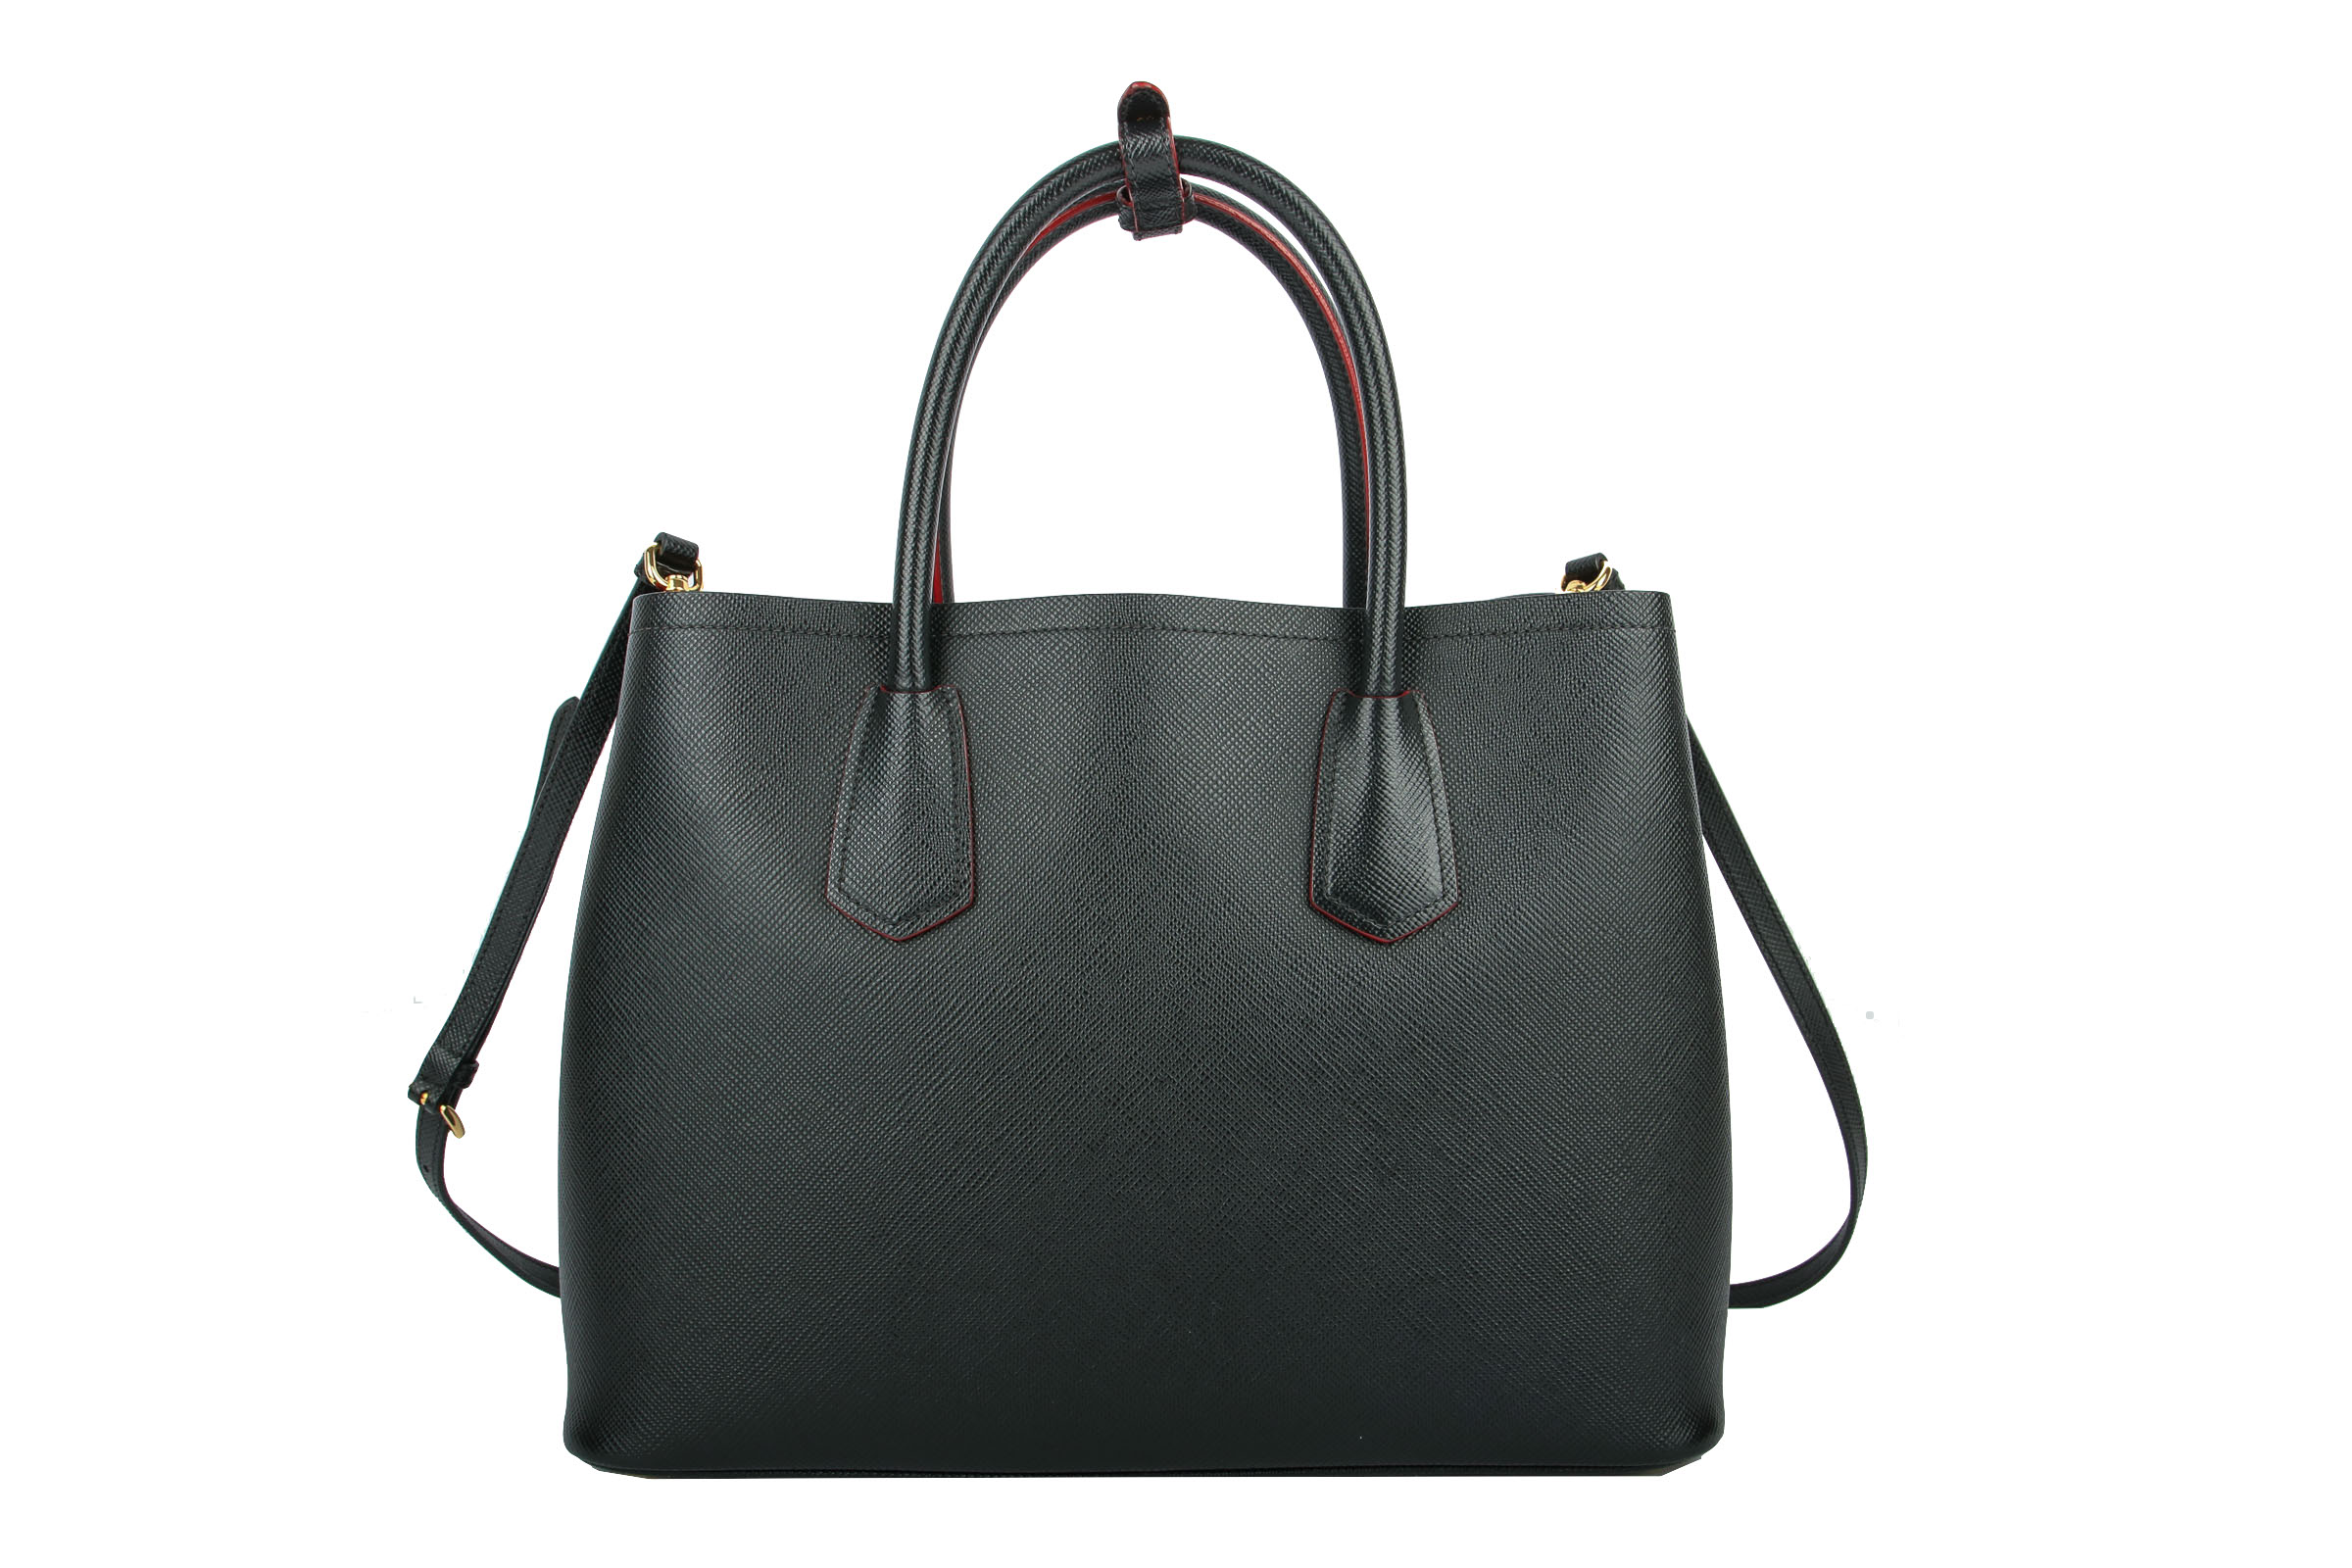 af468818855a Prada Double Bag Saffiano Black | Luxussachen.com